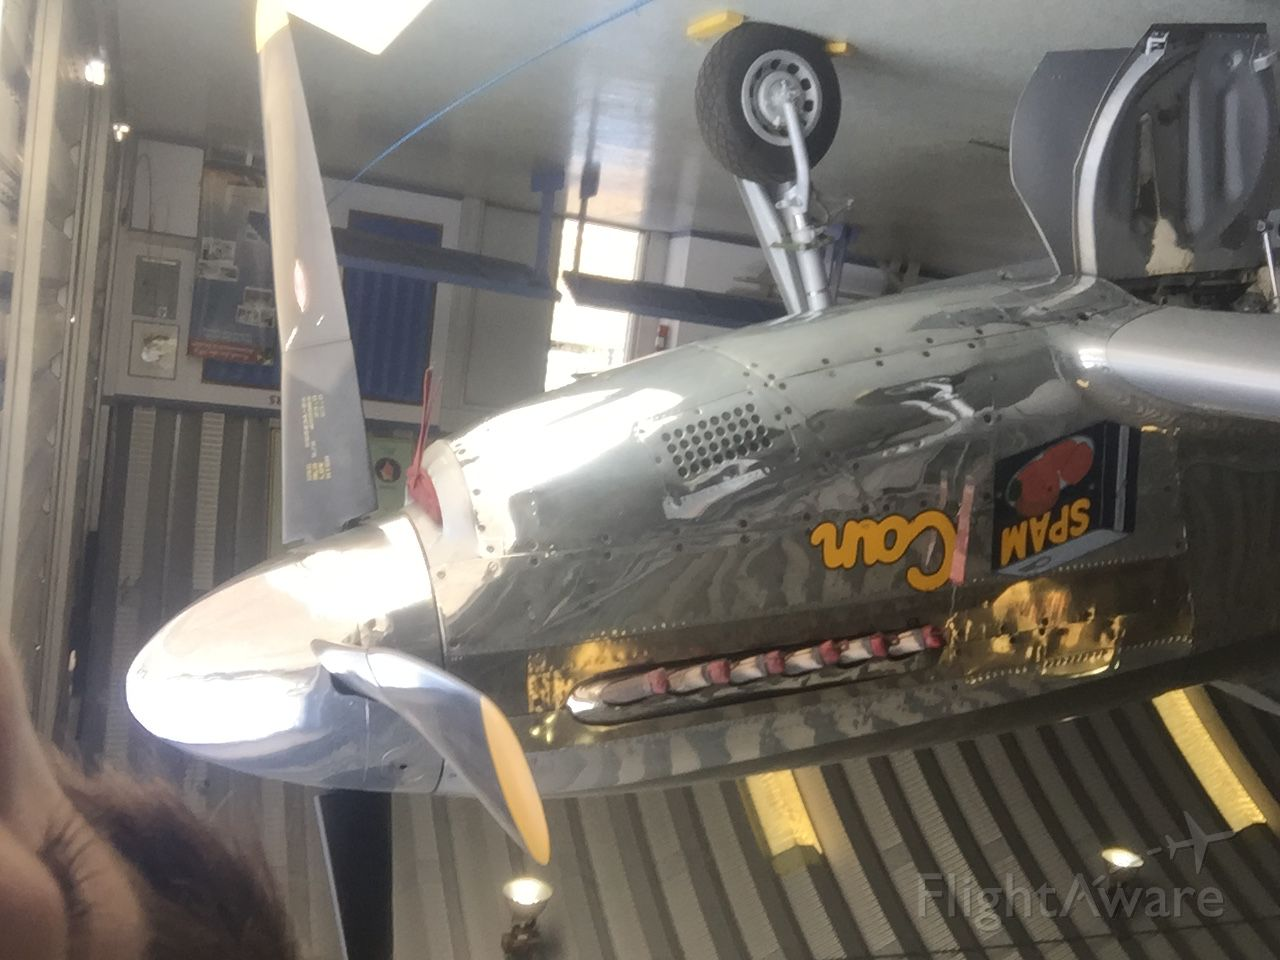 North American P-51 Mustang (NL5441V) - SORRY IS UPSIDE DOWN ITS THAT I TOOK IT ON SELFIE MODEbr /P-51 MUSTANG SPAM CAN